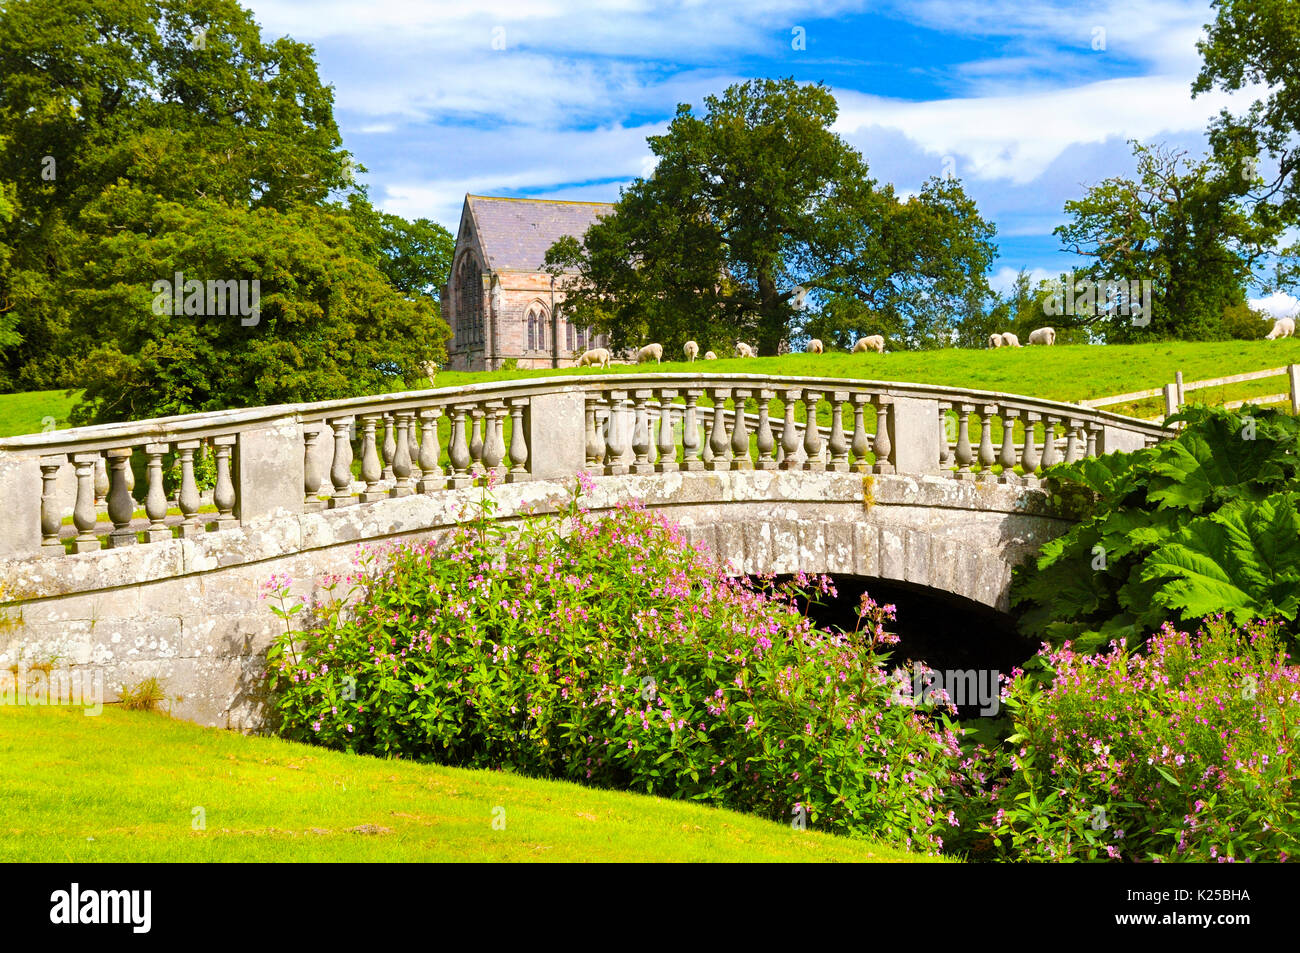 A pastoral scene in the grounds of Brough Hall, North Yorkshire, with grazing sheep, a lovely old church and an18th century sandstone ashlar bridge. - Stock Image